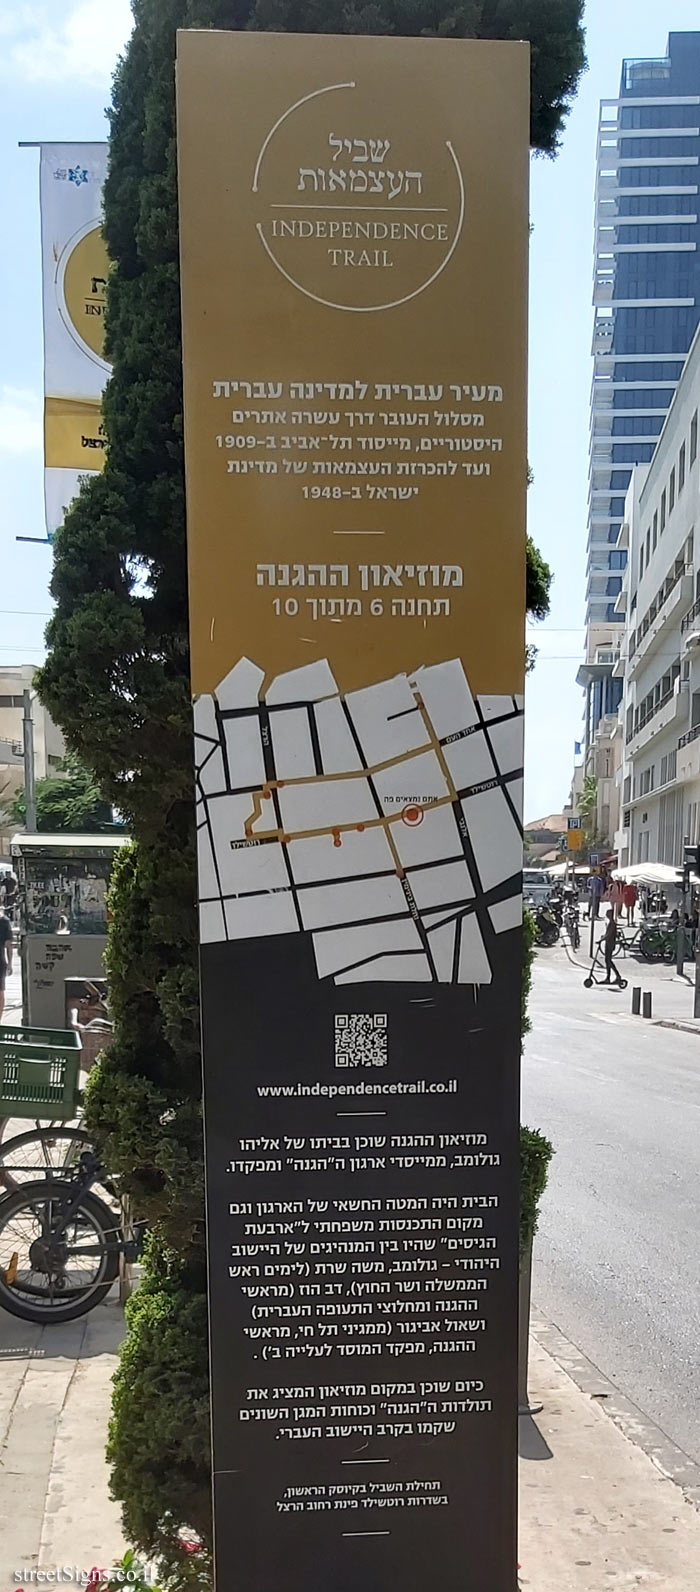 Tel Aviv - Independence Trail - The Haganah Museum - Information